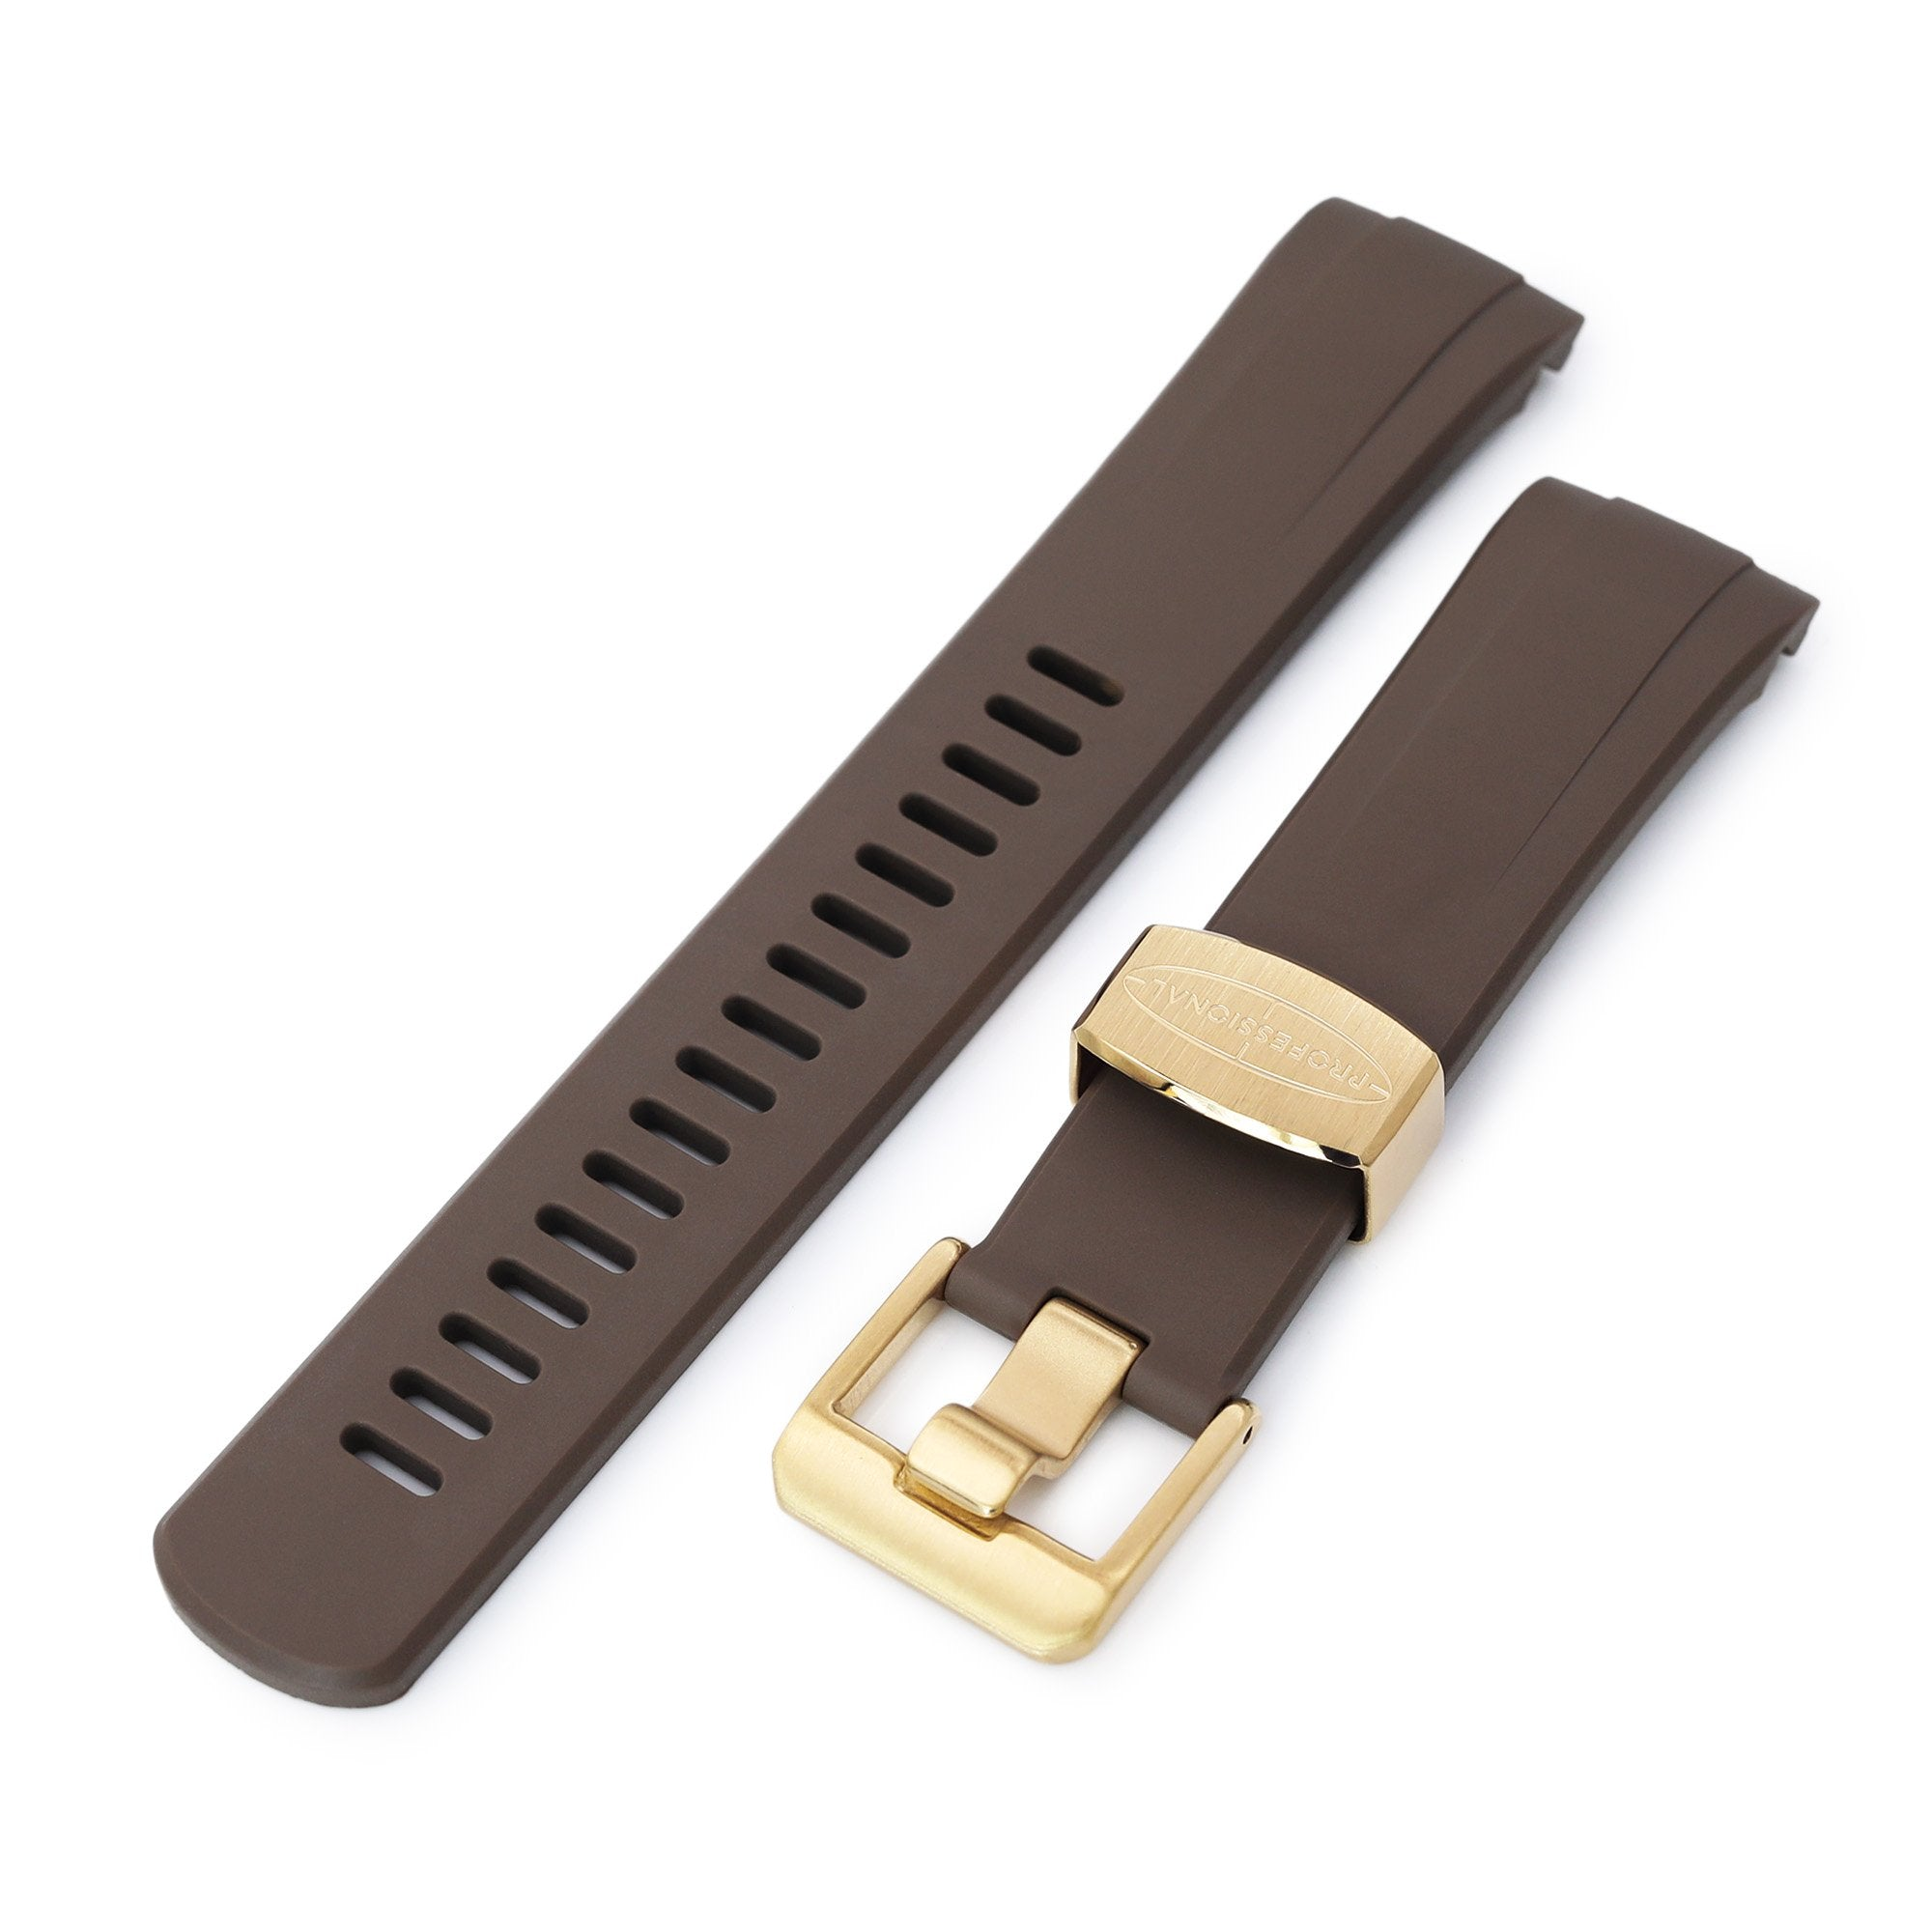 22mm Crafter Blue Brown Rubber Curved Lug Watch Band for Seiko Gold Turtle SRPC44 IP Gold Buckle Strapcode Watch Bands